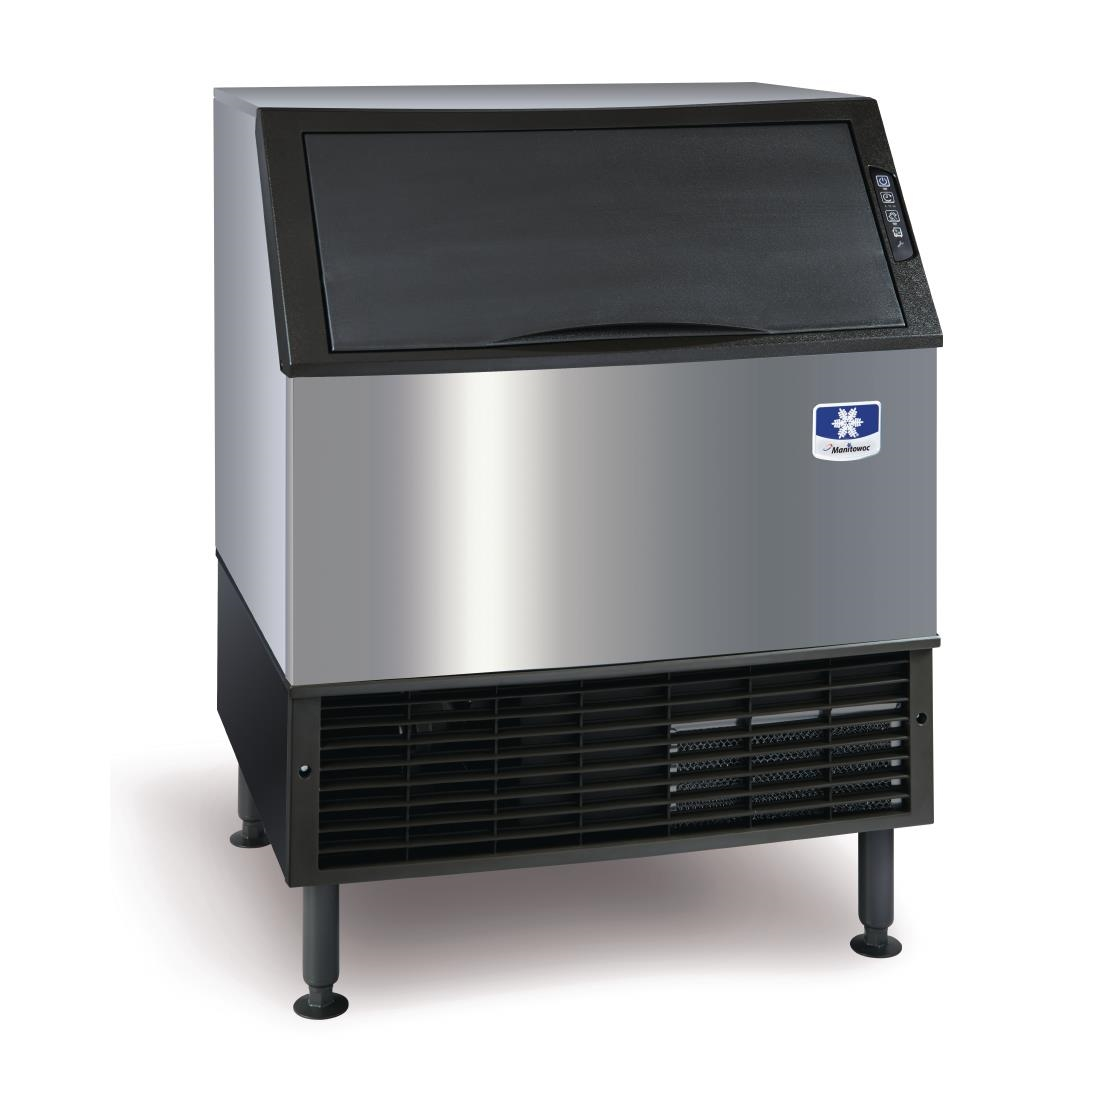 Image of Manitowoc NEO Integral Storage Ice Maker 119kgs